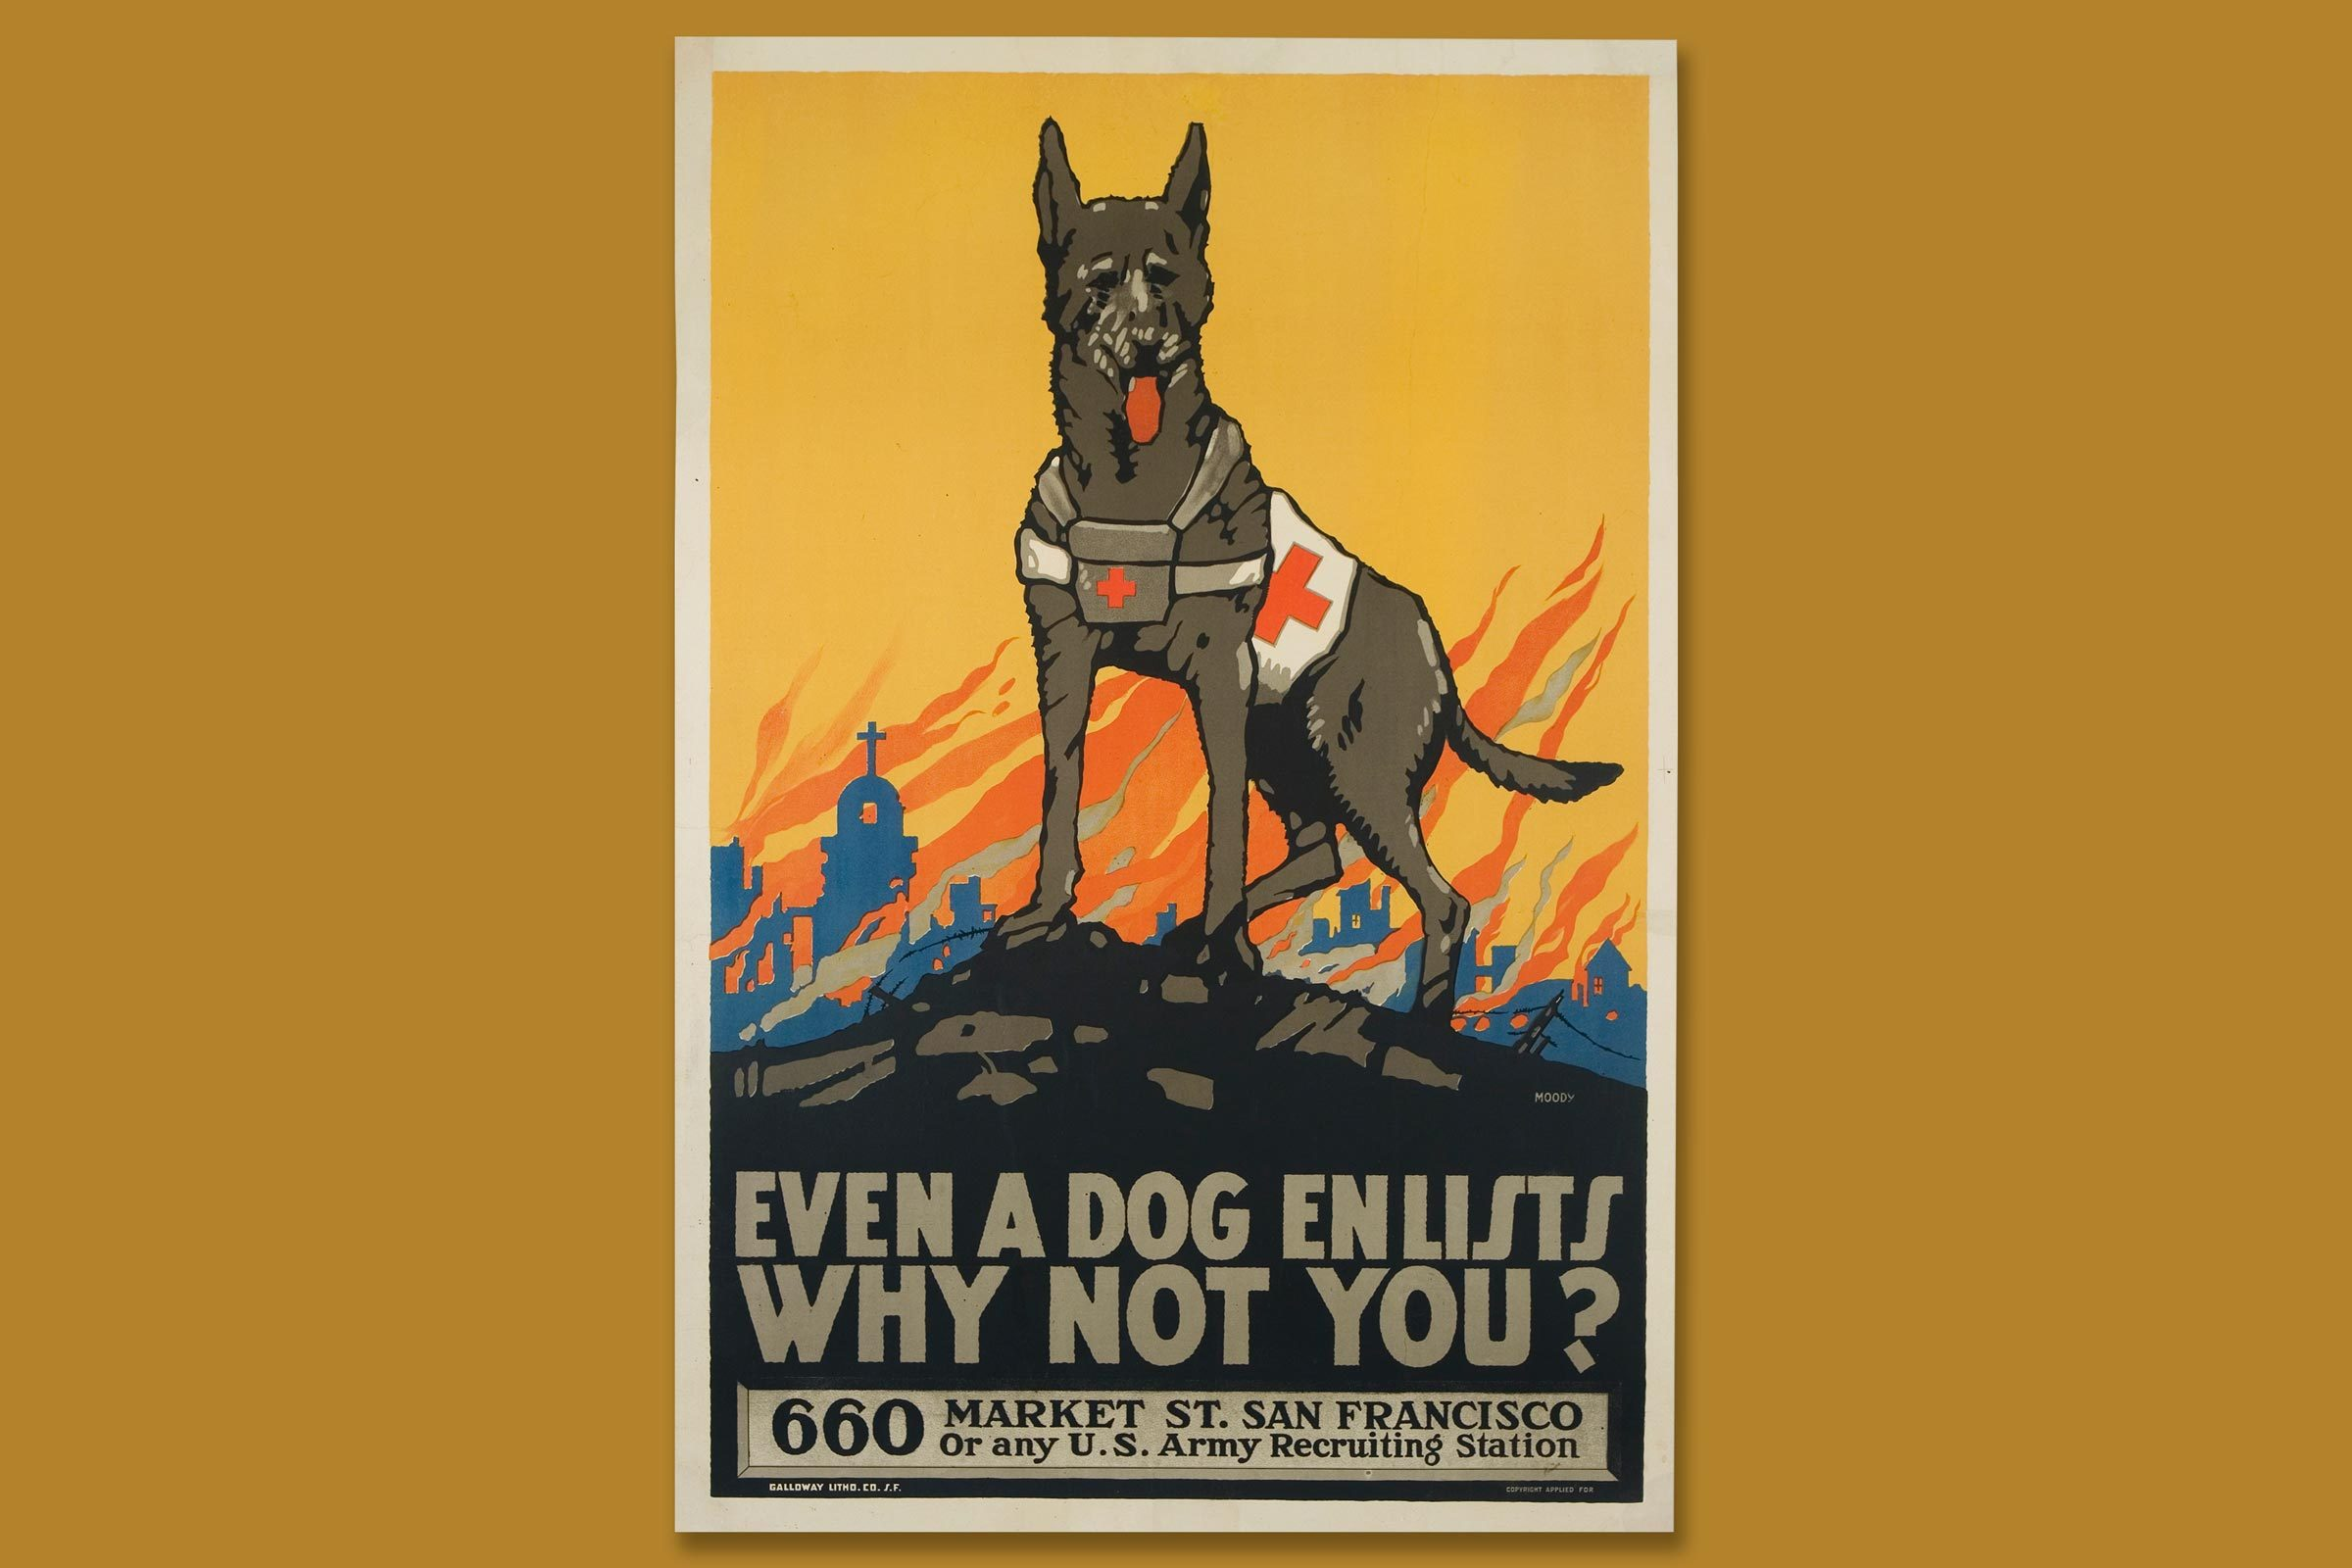 wwi poster featuring a dog